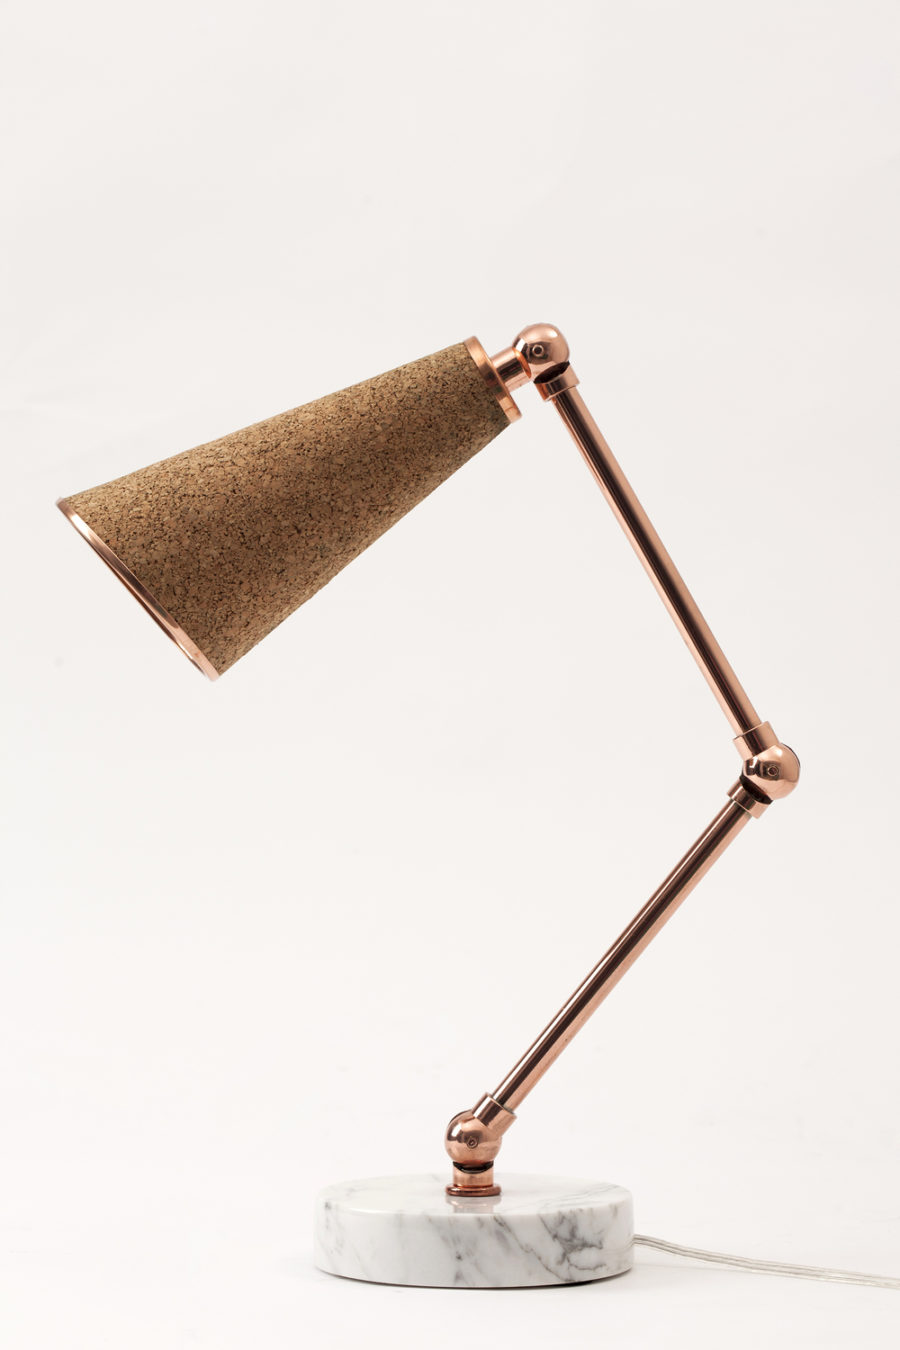 modern night lamps forged in metal